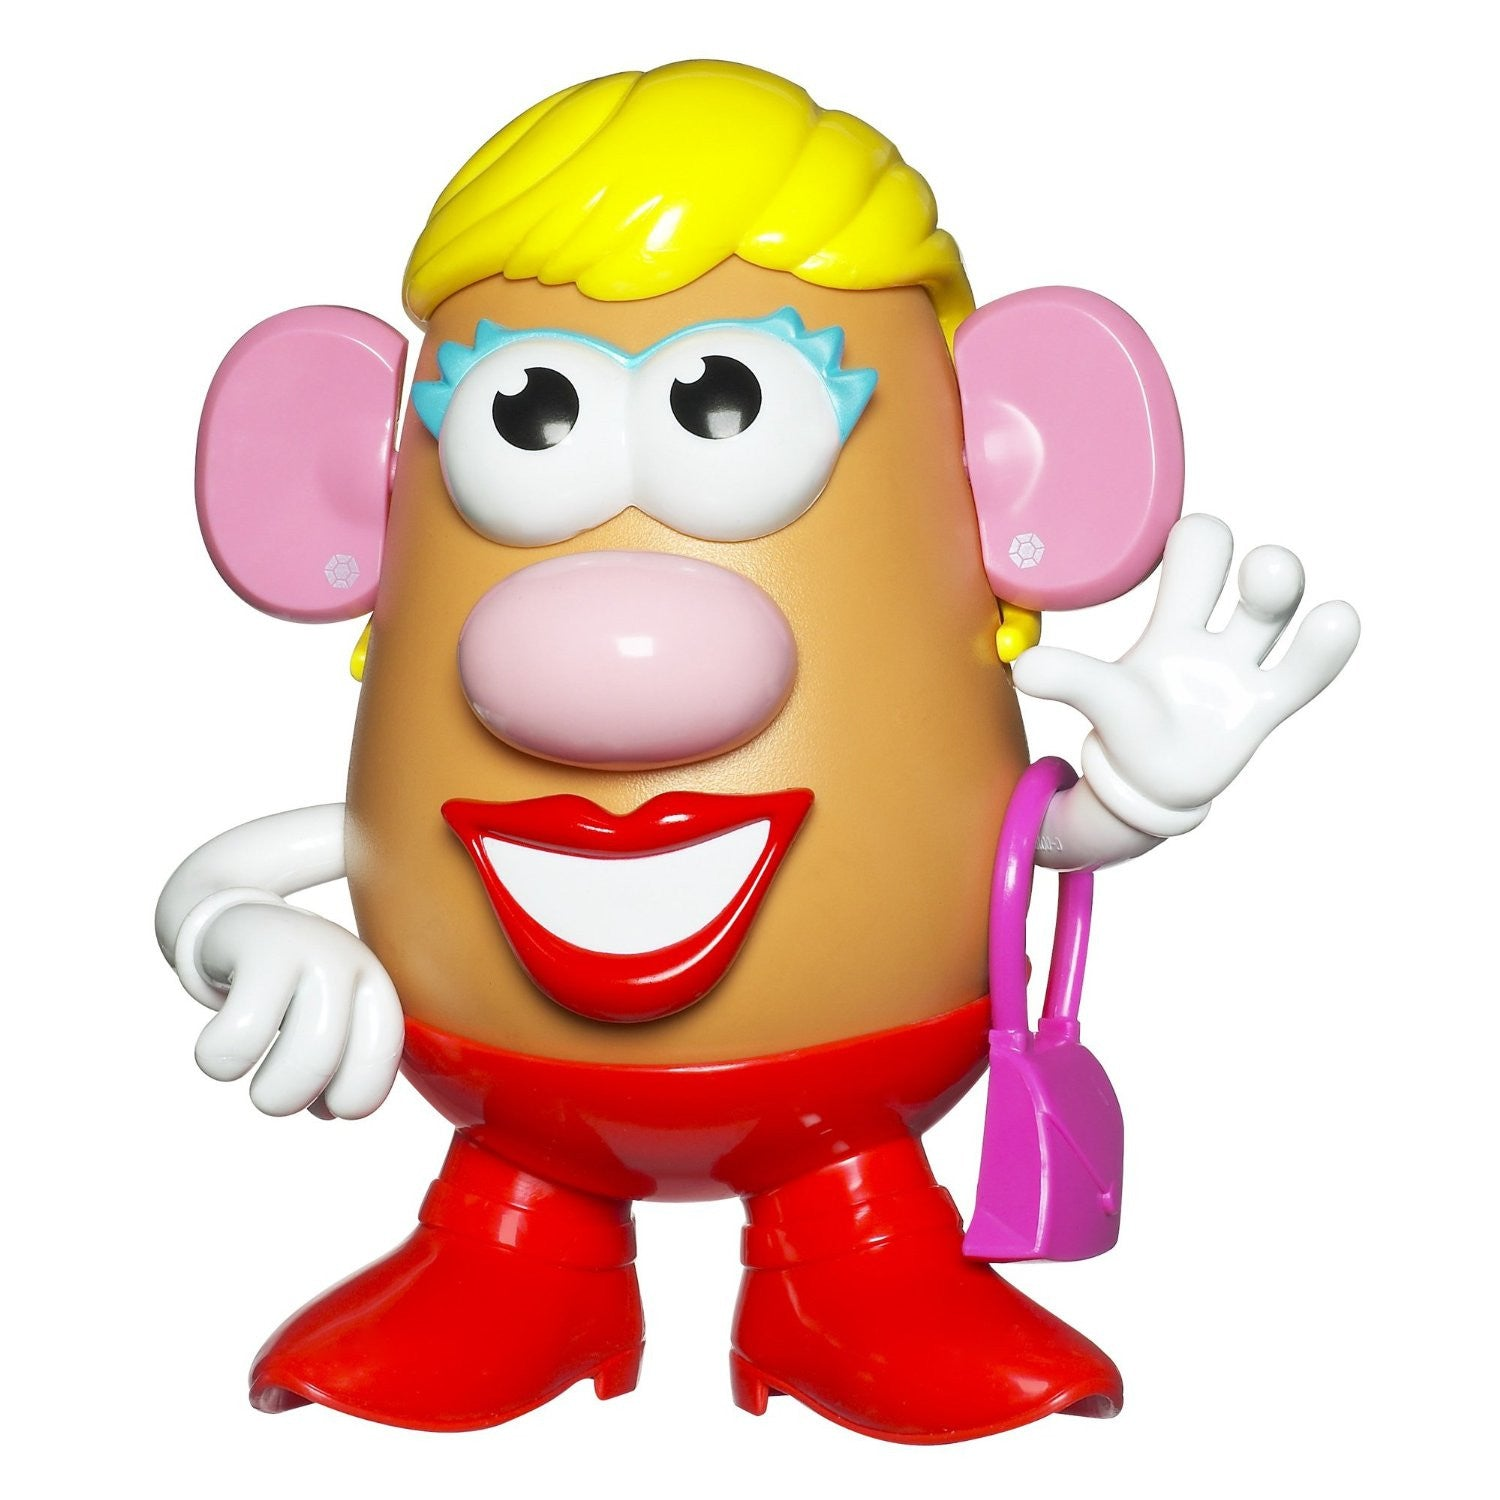 The history of Mr. Potato Head